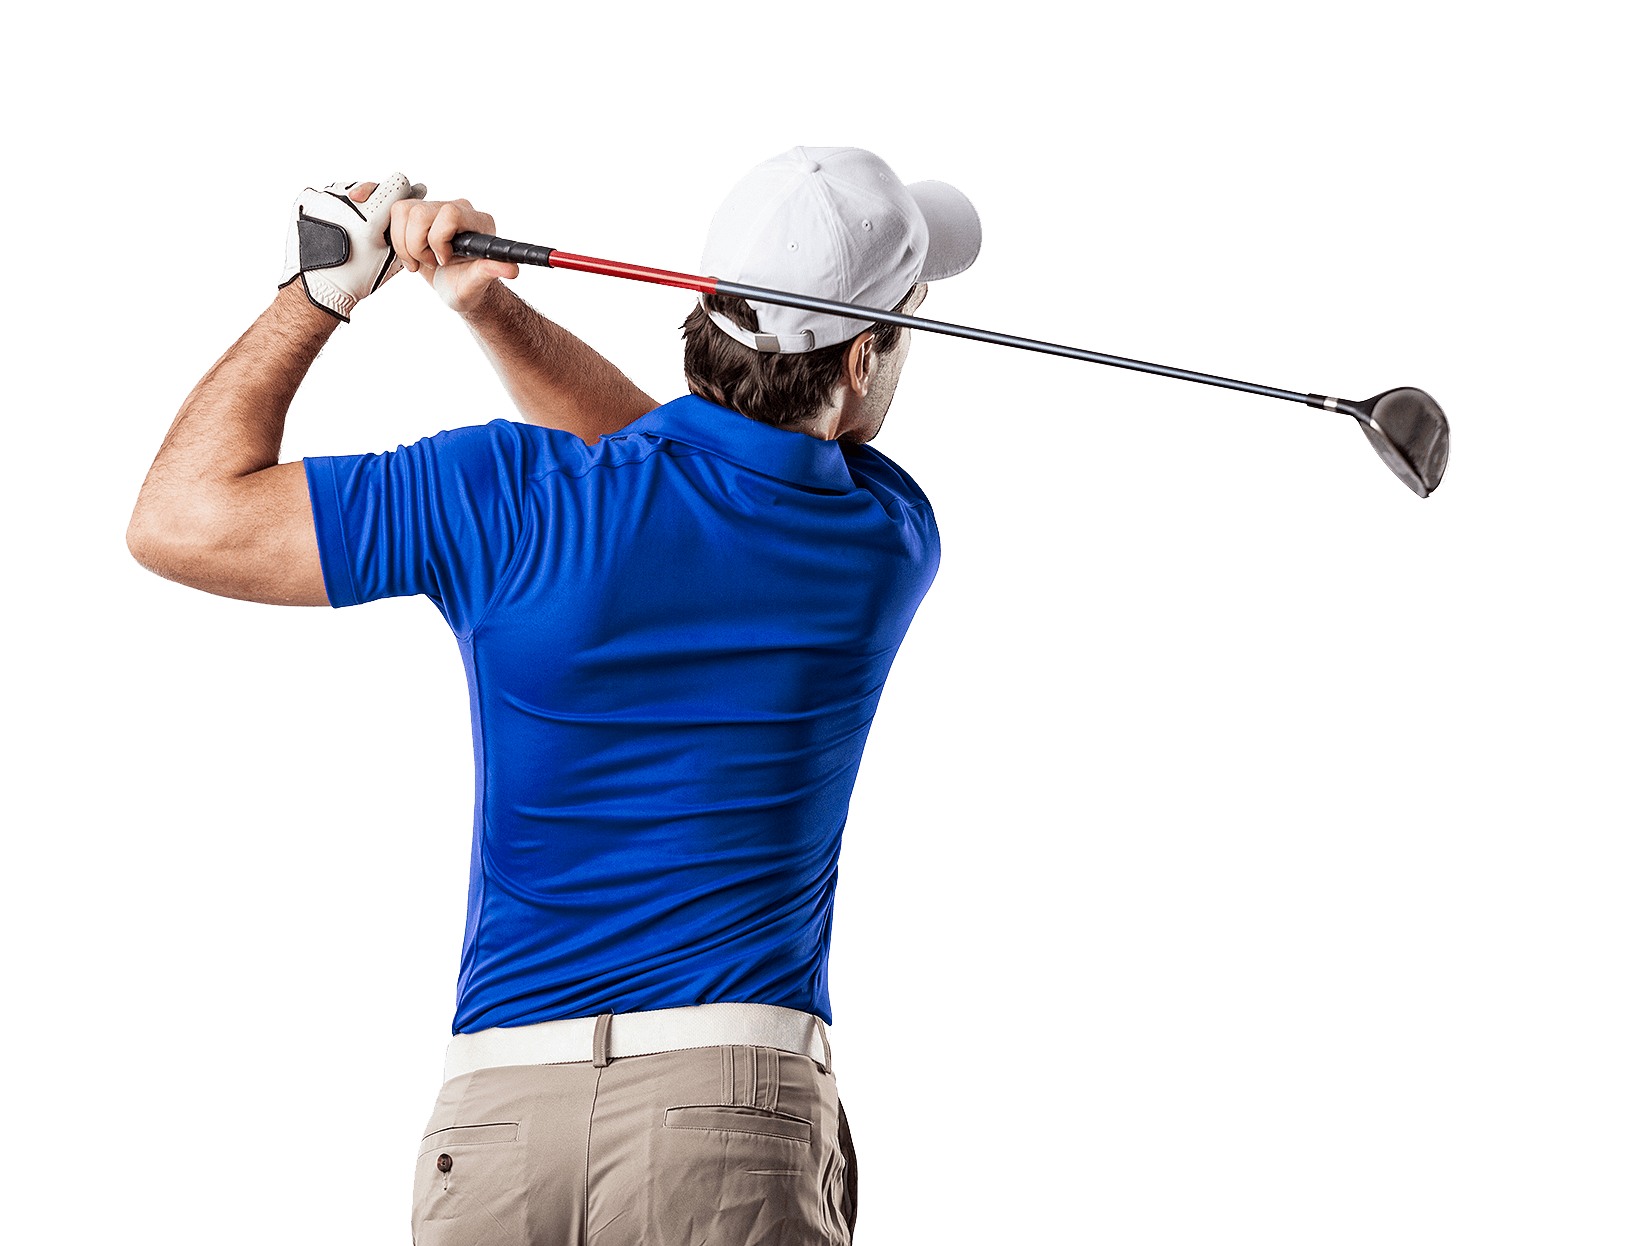 man in blue polo playing golf